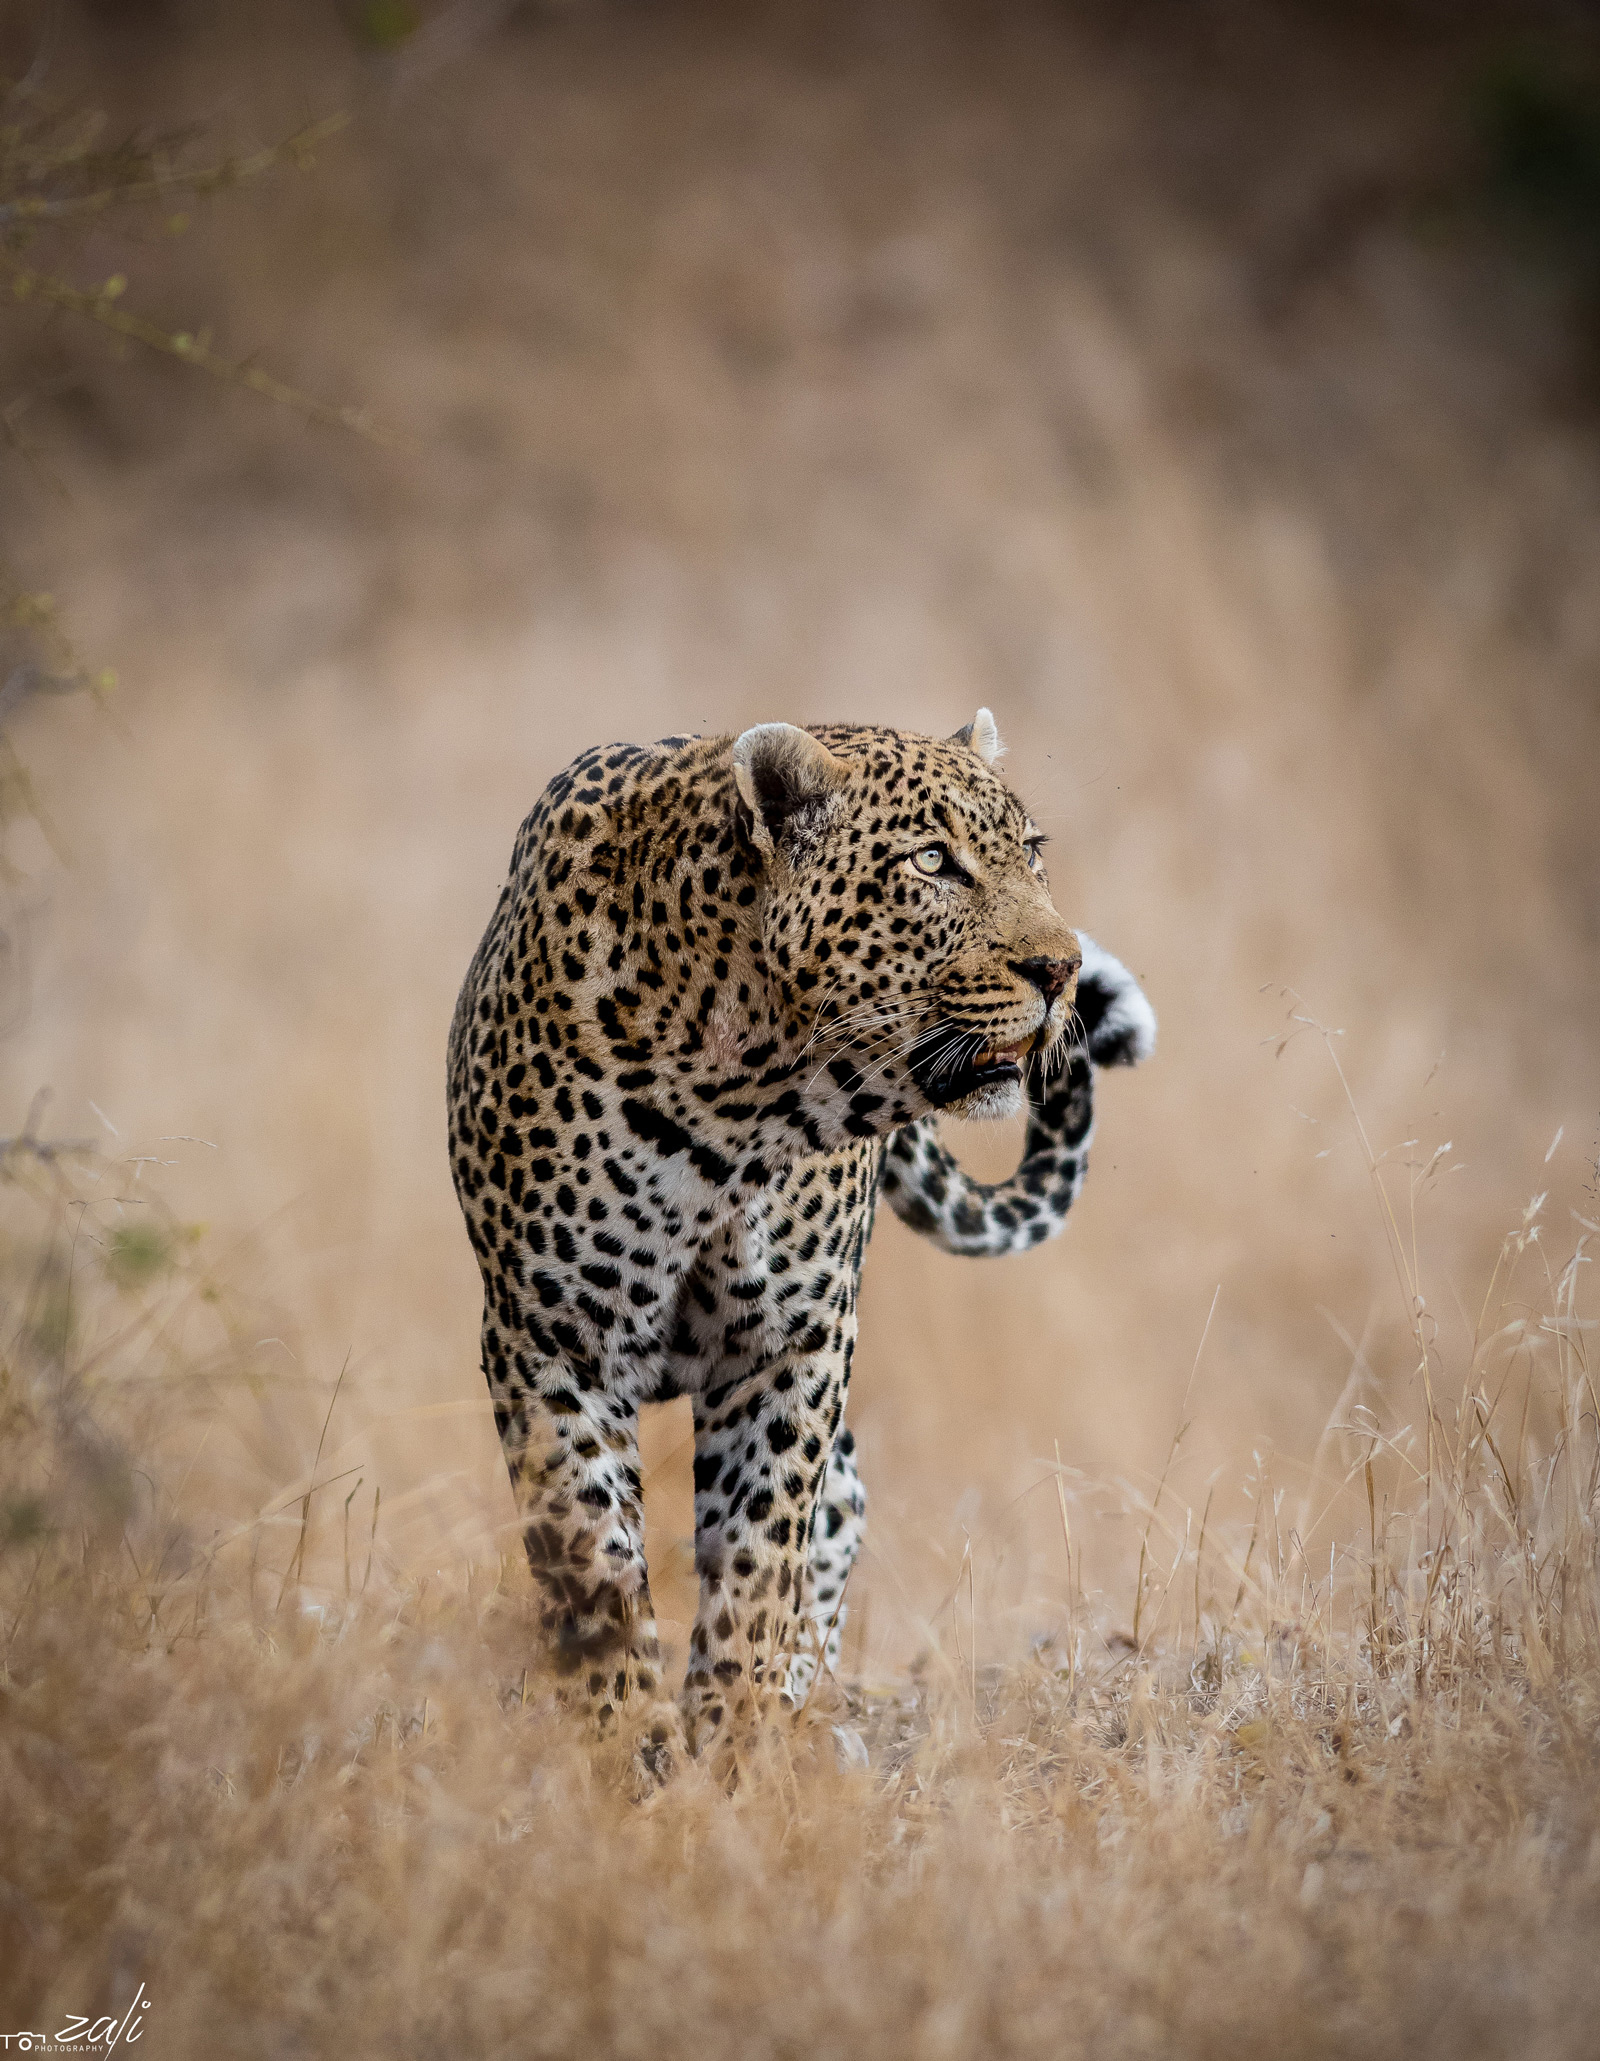 A leopard observes guests on game-viewing vehicle a few metres away from him. Sabi Sands Private Game Reserve, South Africa © Zaheer Ali